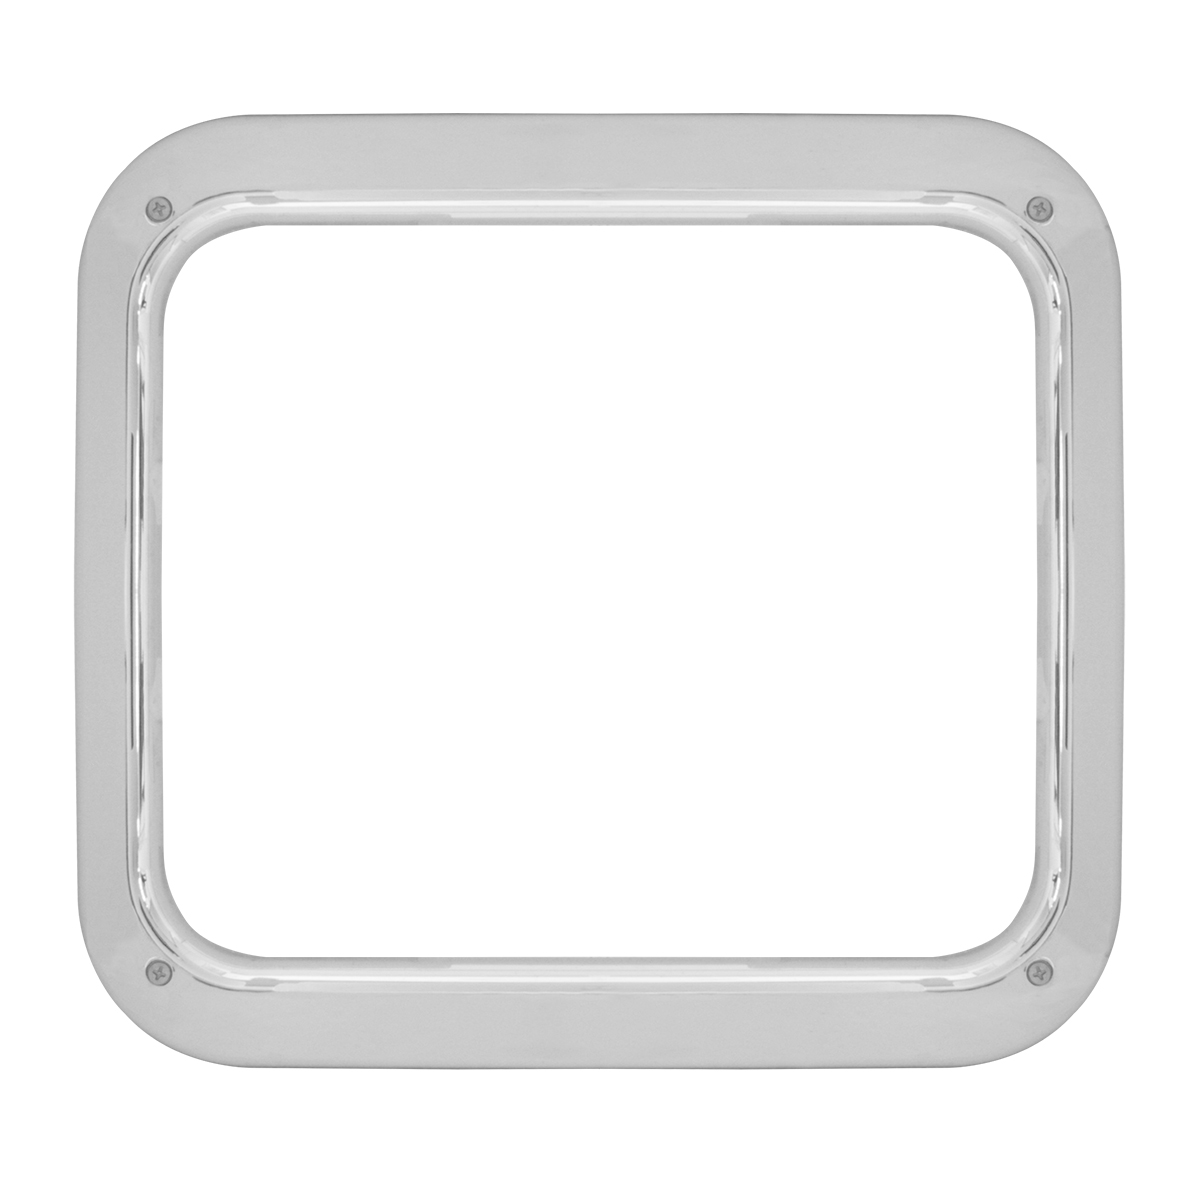 Grand General 68632 Plastic Chrome Lighting Control Panel Cover with 4-Switch Opening for Kenworth